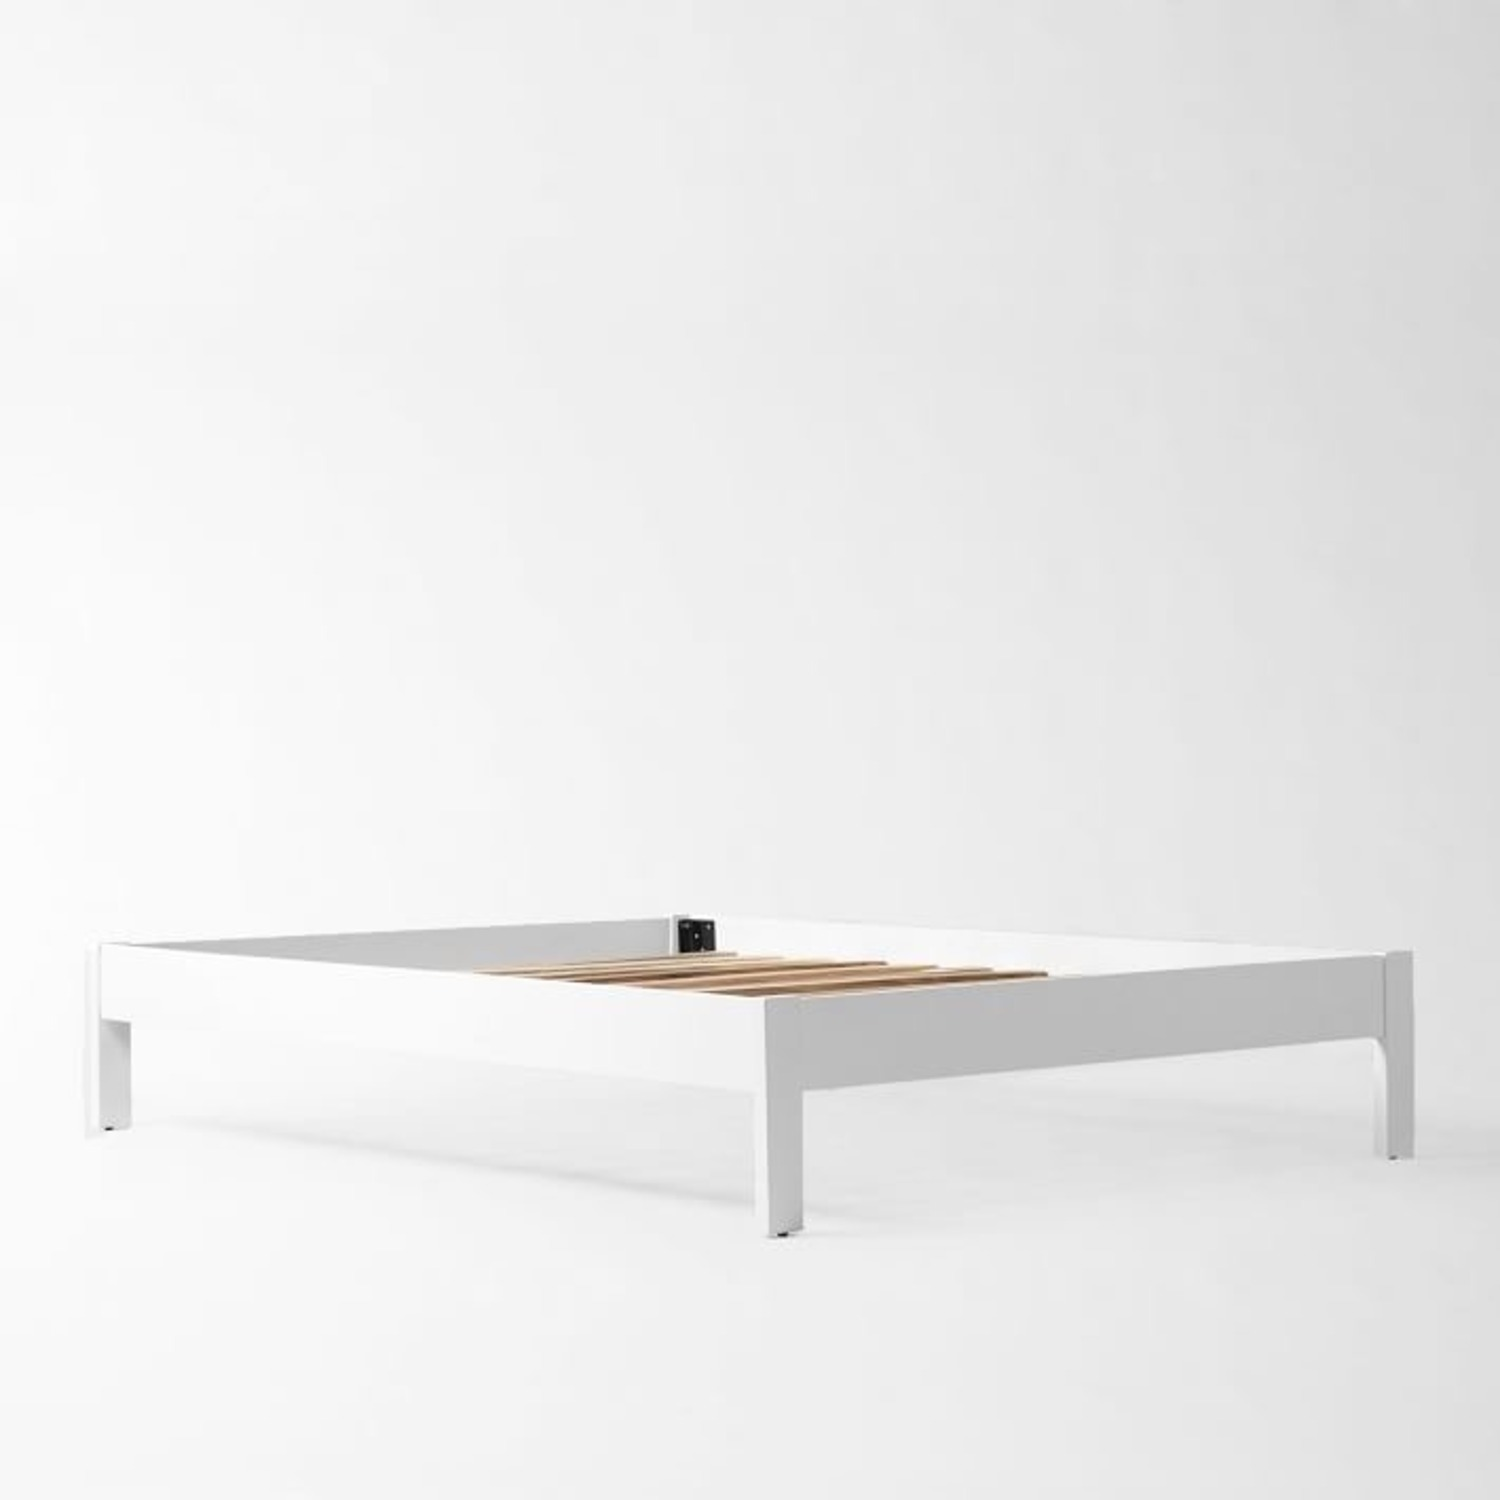 West Elm Simple Bed Frame - image-3